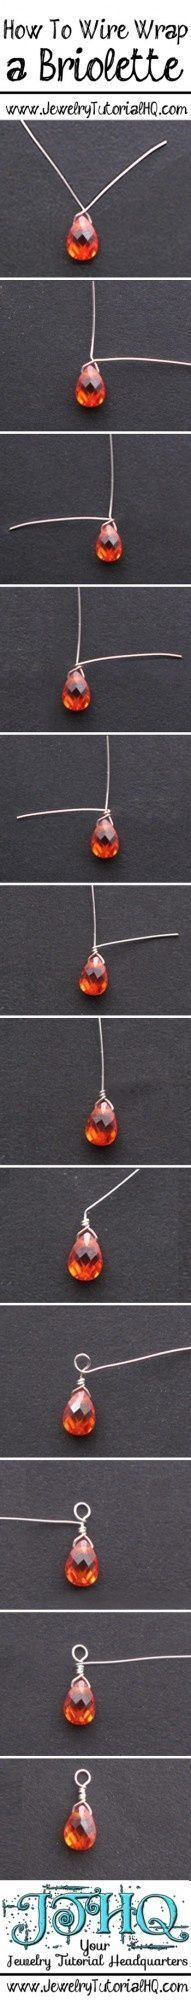 how to wire wrap a briolette step by step tutorial {+ video} #JewelrySupplies